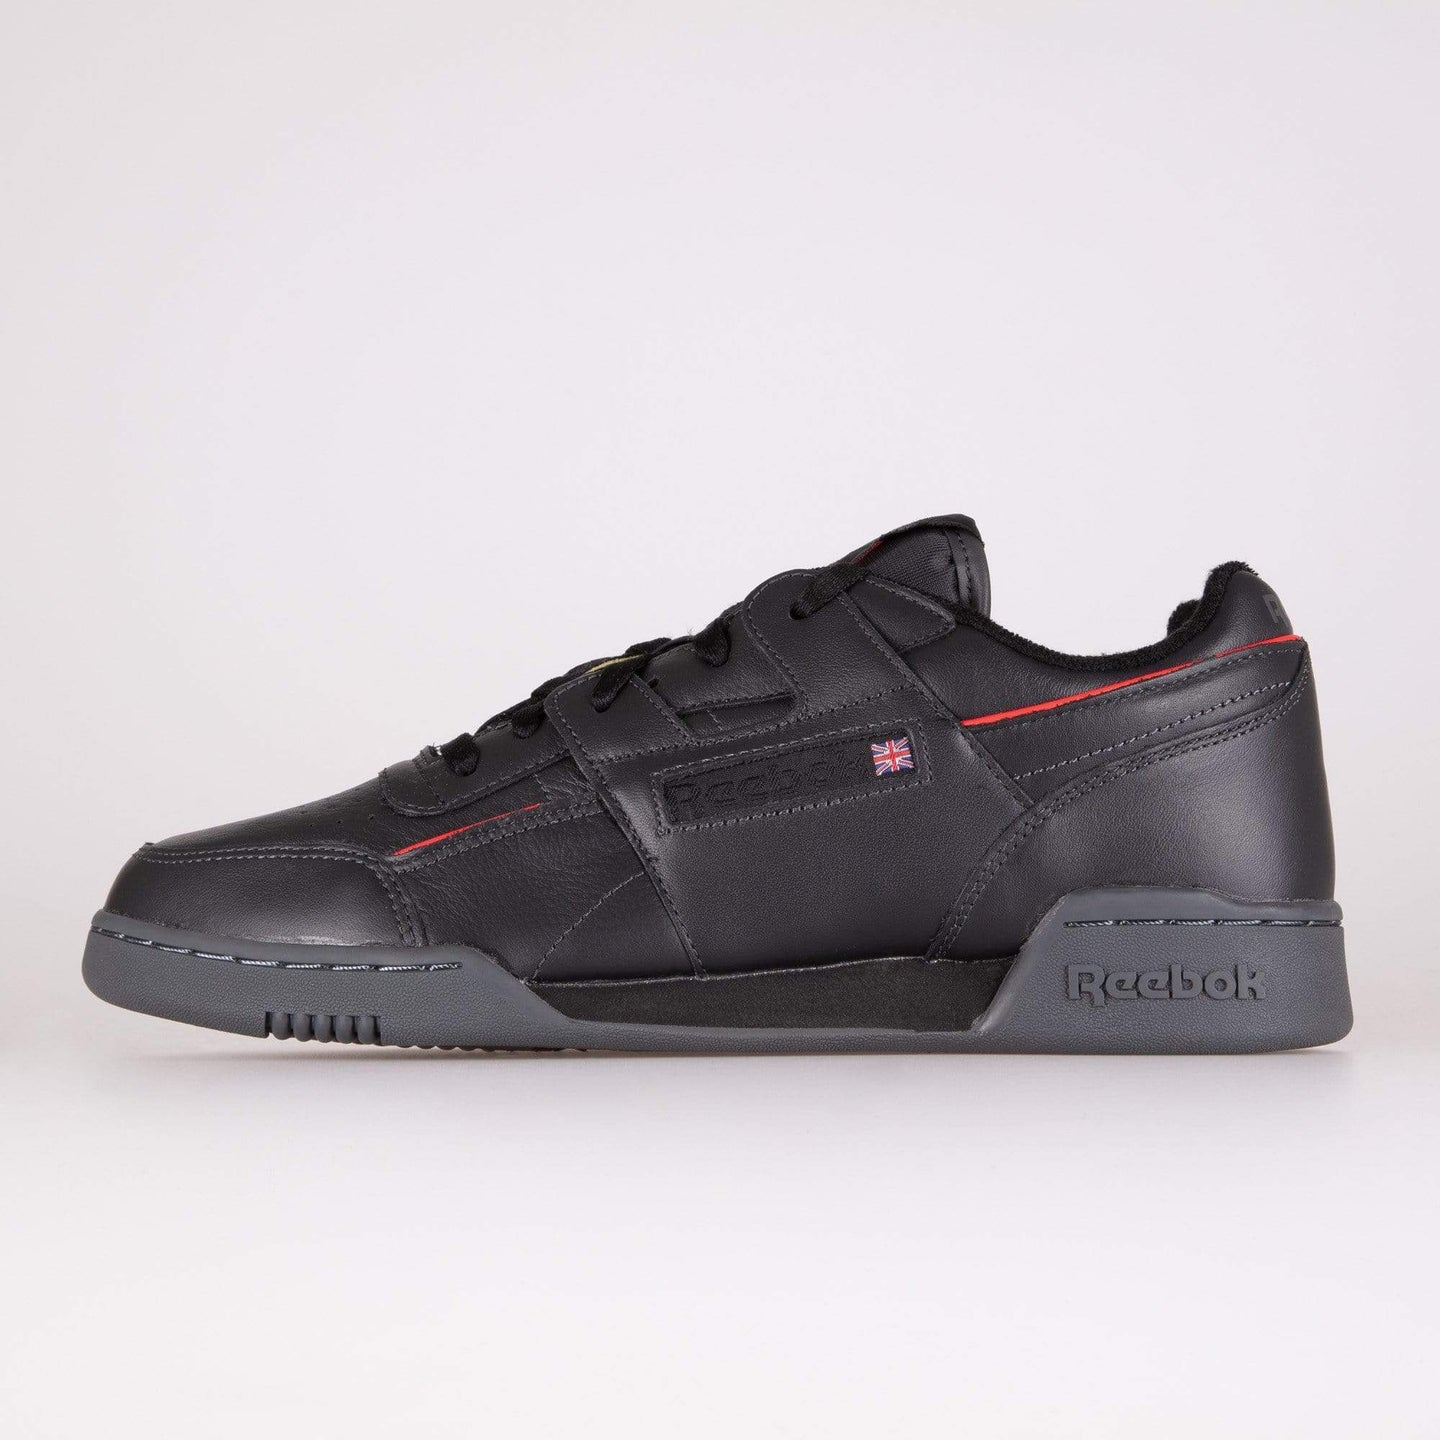 Reebok Classic Workout Plus MU - True Grey / Black / Radiant Red UK 7 EG64437 4062053543725 Reebok Classic Trainers